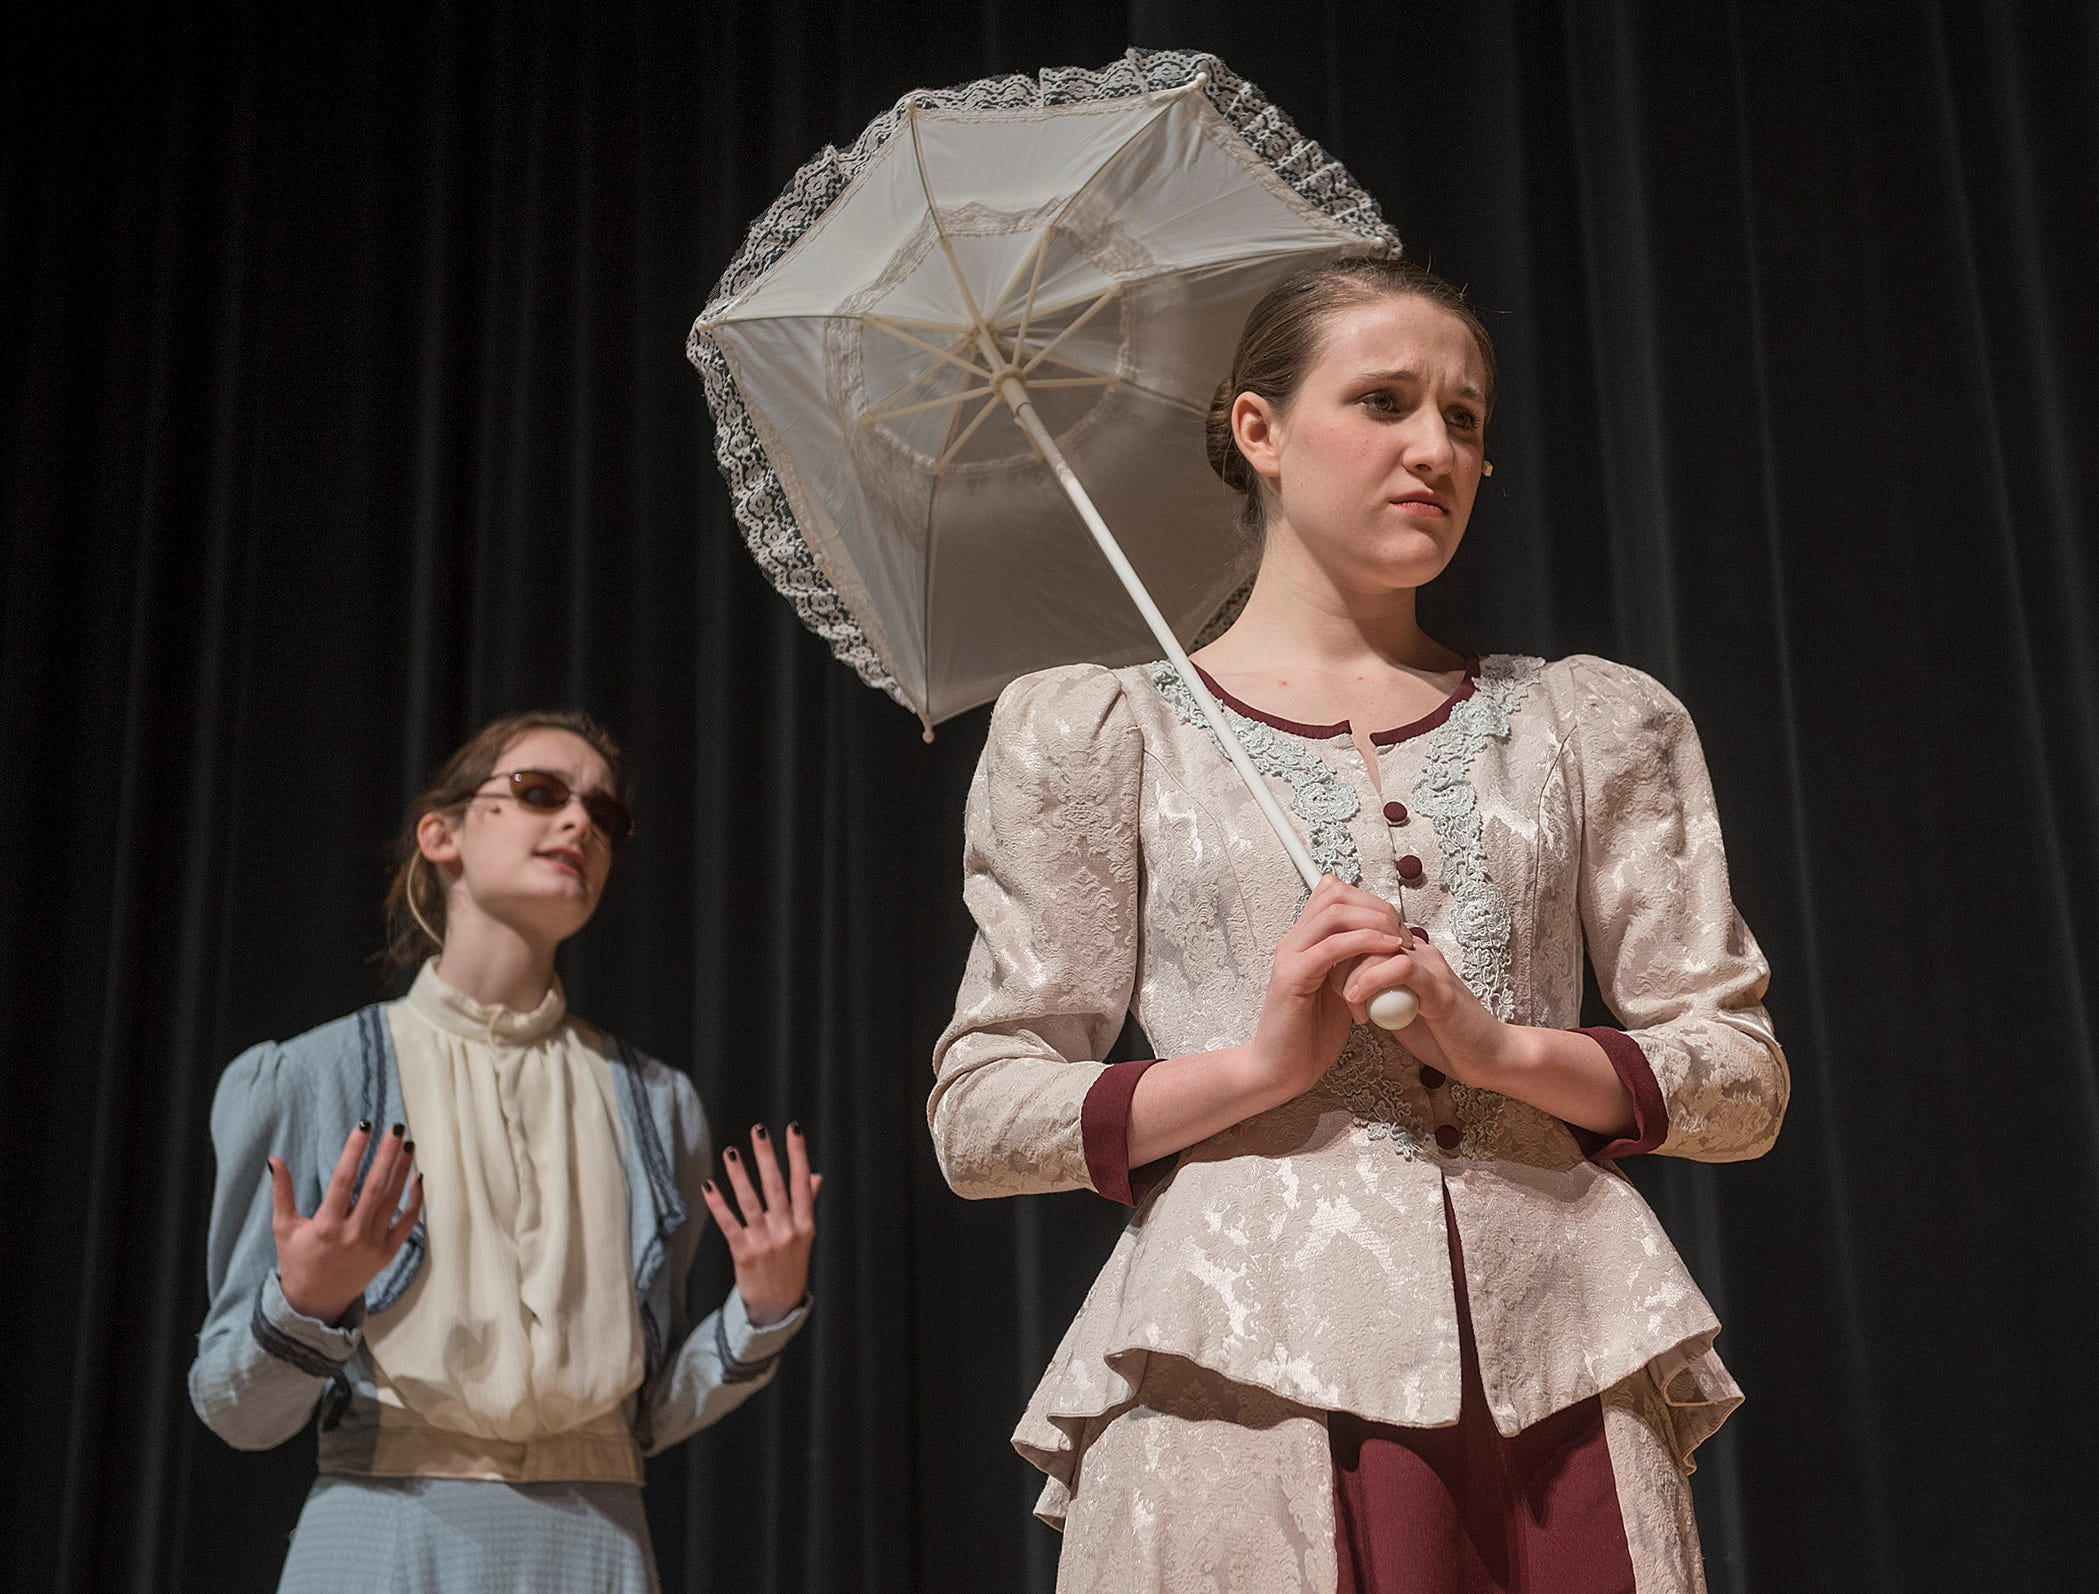 At the train station, Kate Keller (Emma Pickett) is dismayed to discover that Annie Sullivan (Caitlin Griffin) is young, and just out of school.